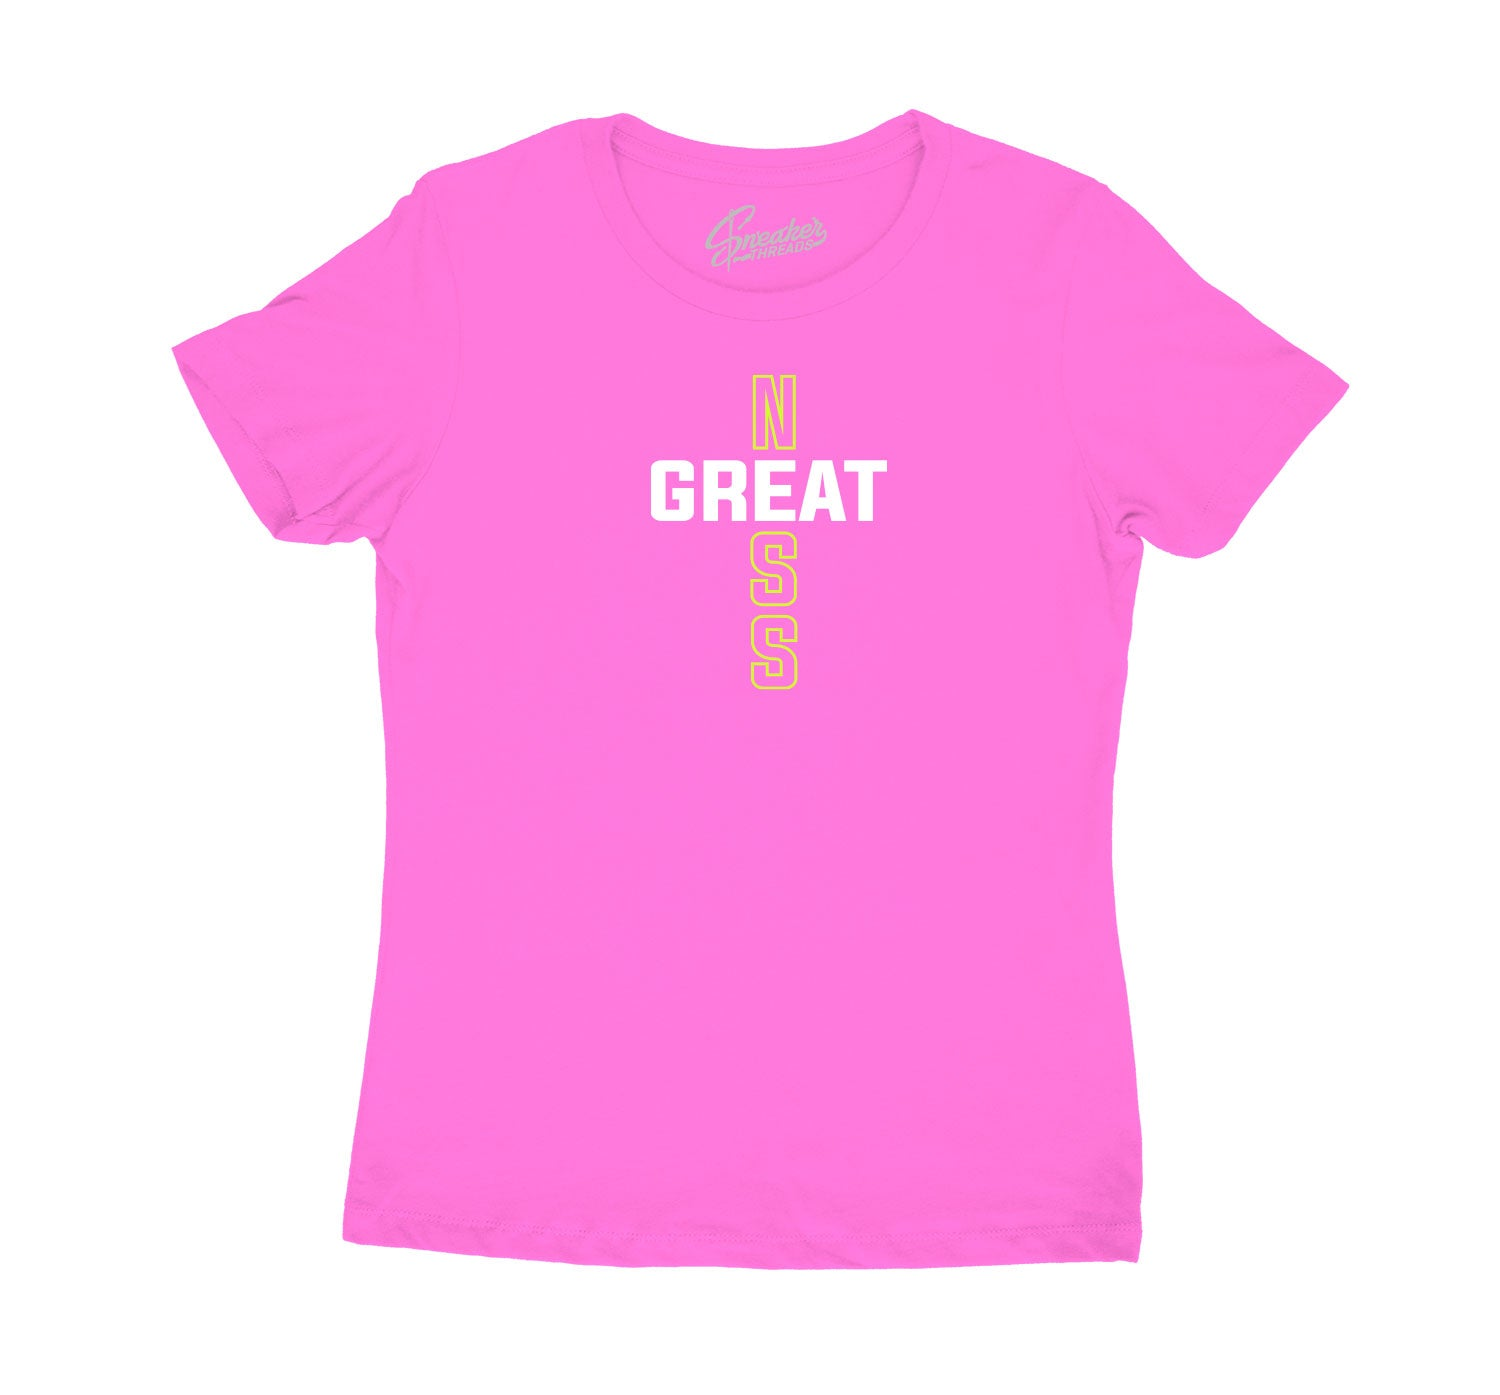 Shirt for girls match Jordan 4 lemon venom collection